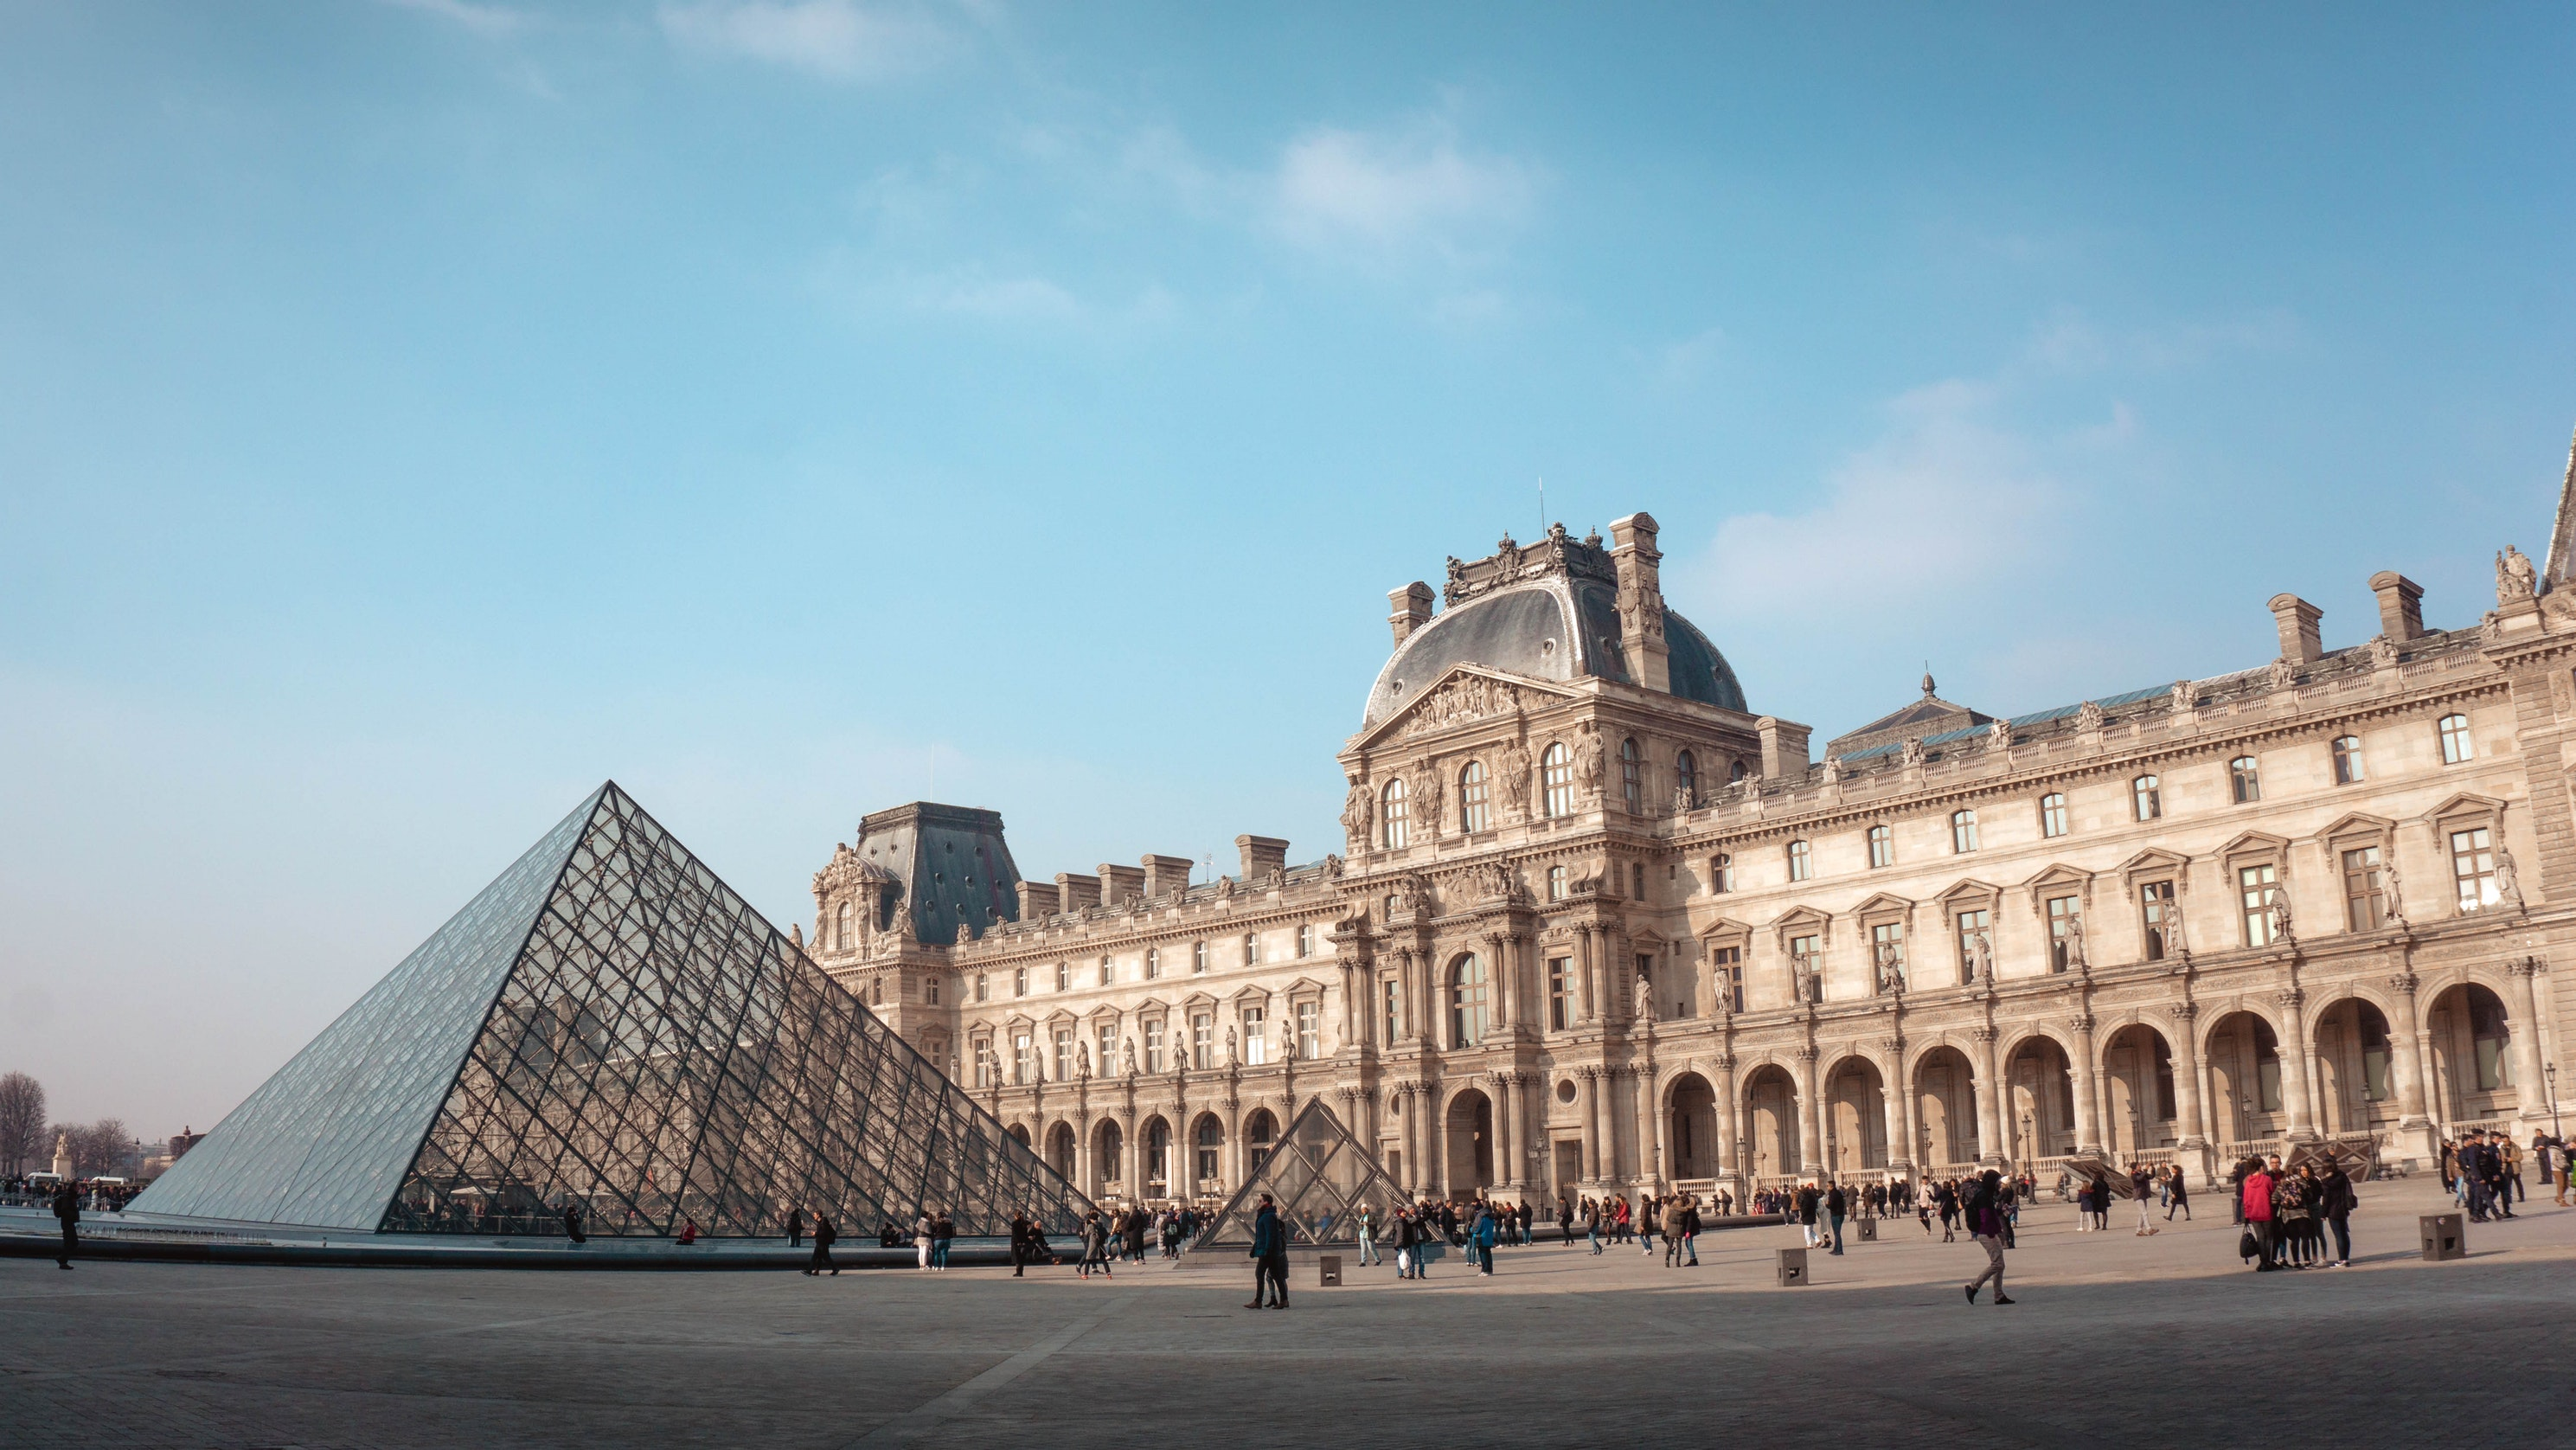 Why have Airbnb and the Louvre Museum in Paris partnered for